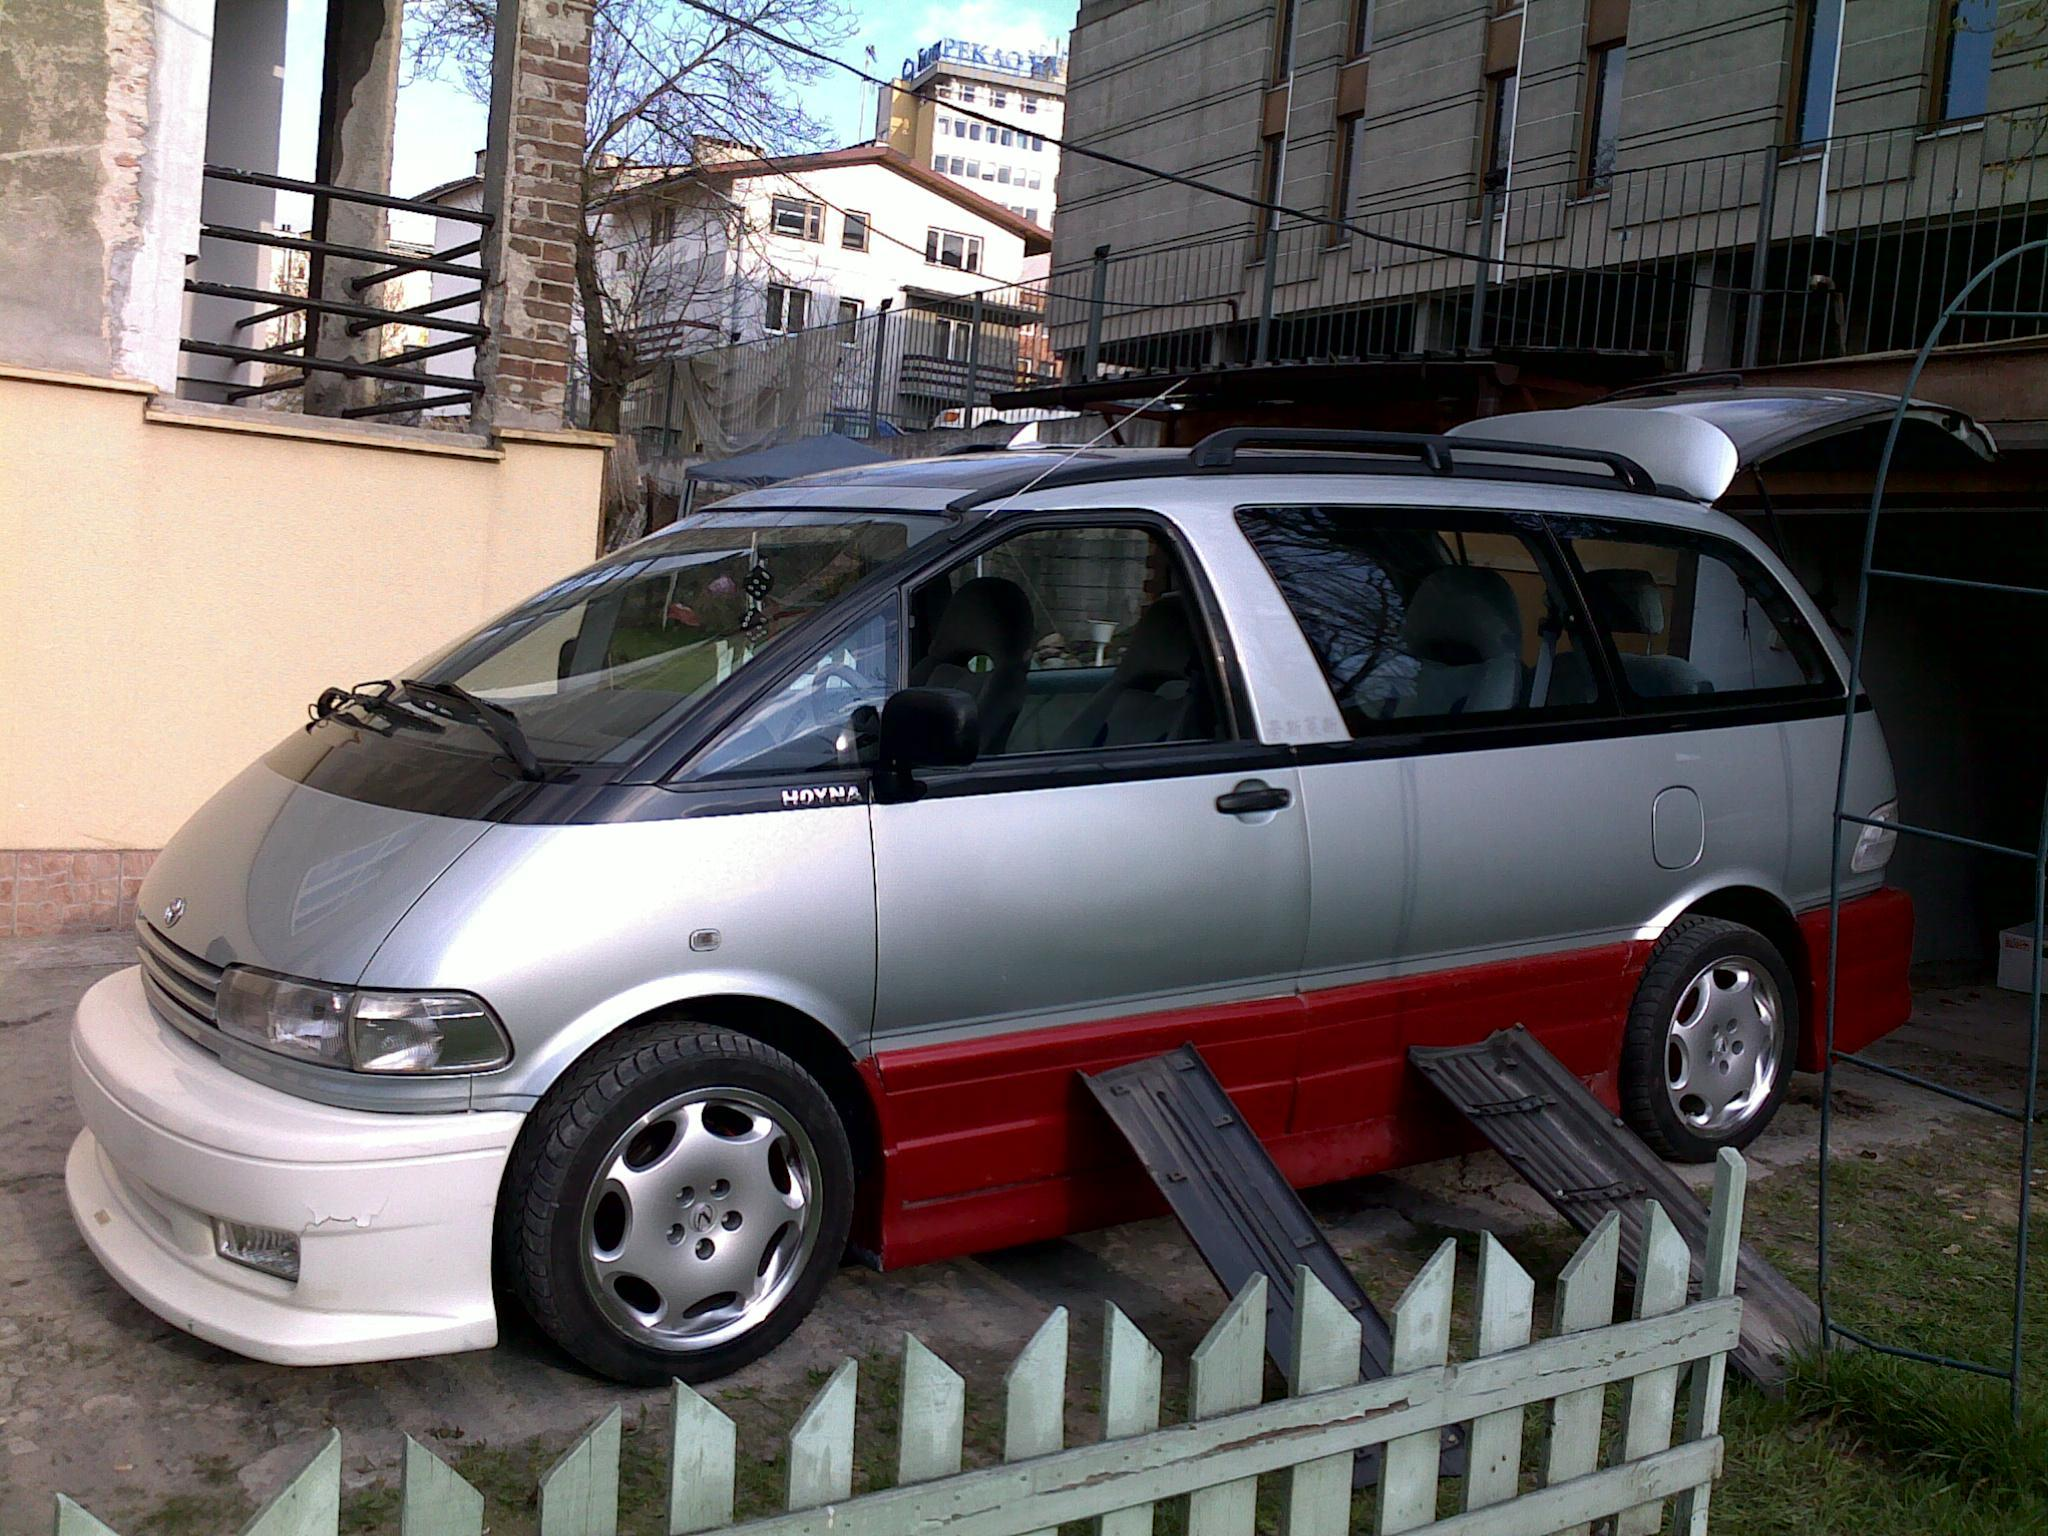 Another HOYNA 1993 Toyota Previa post... - 9271510